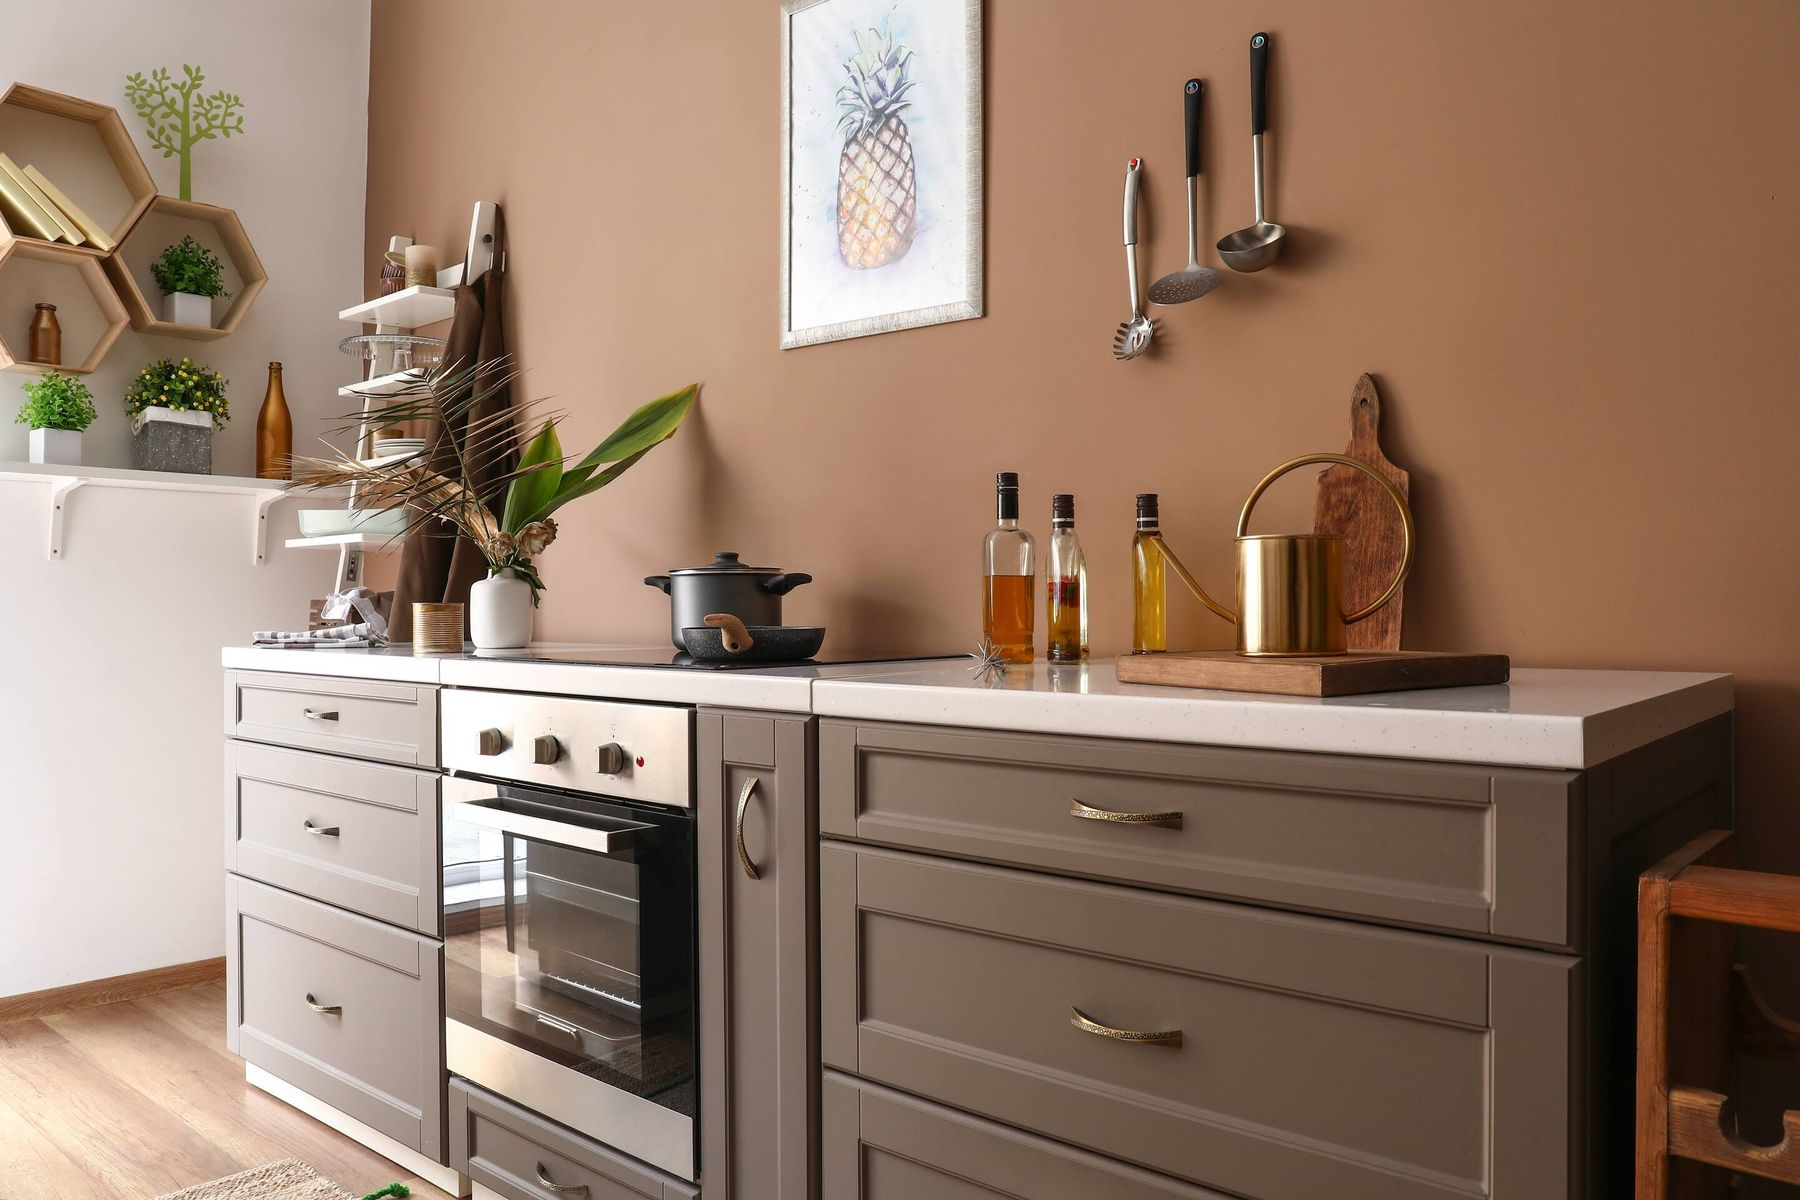 Want to Banish Grease Stains on Your Kitchen Walls? Try This Now!